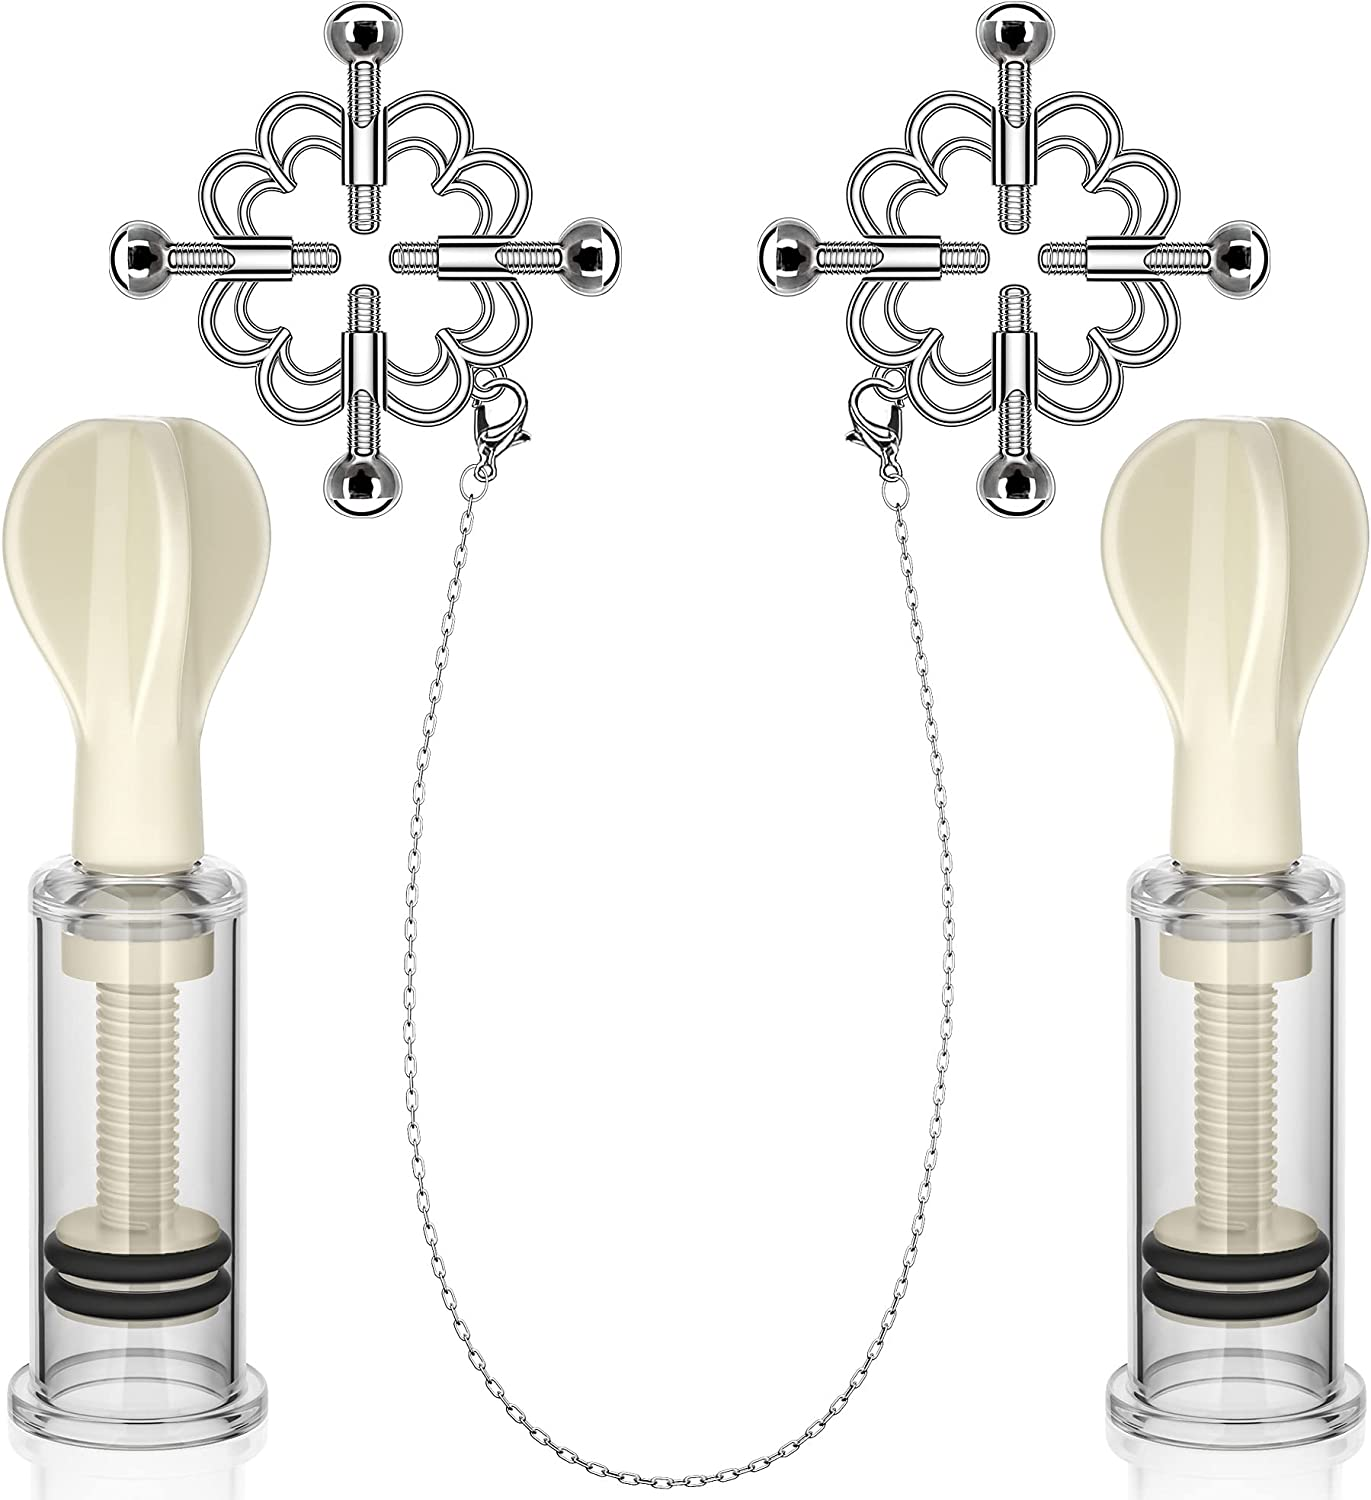 Nipple Clamps Selling Indianapolis Mall rankings with Enlargement Sucker Adjustable